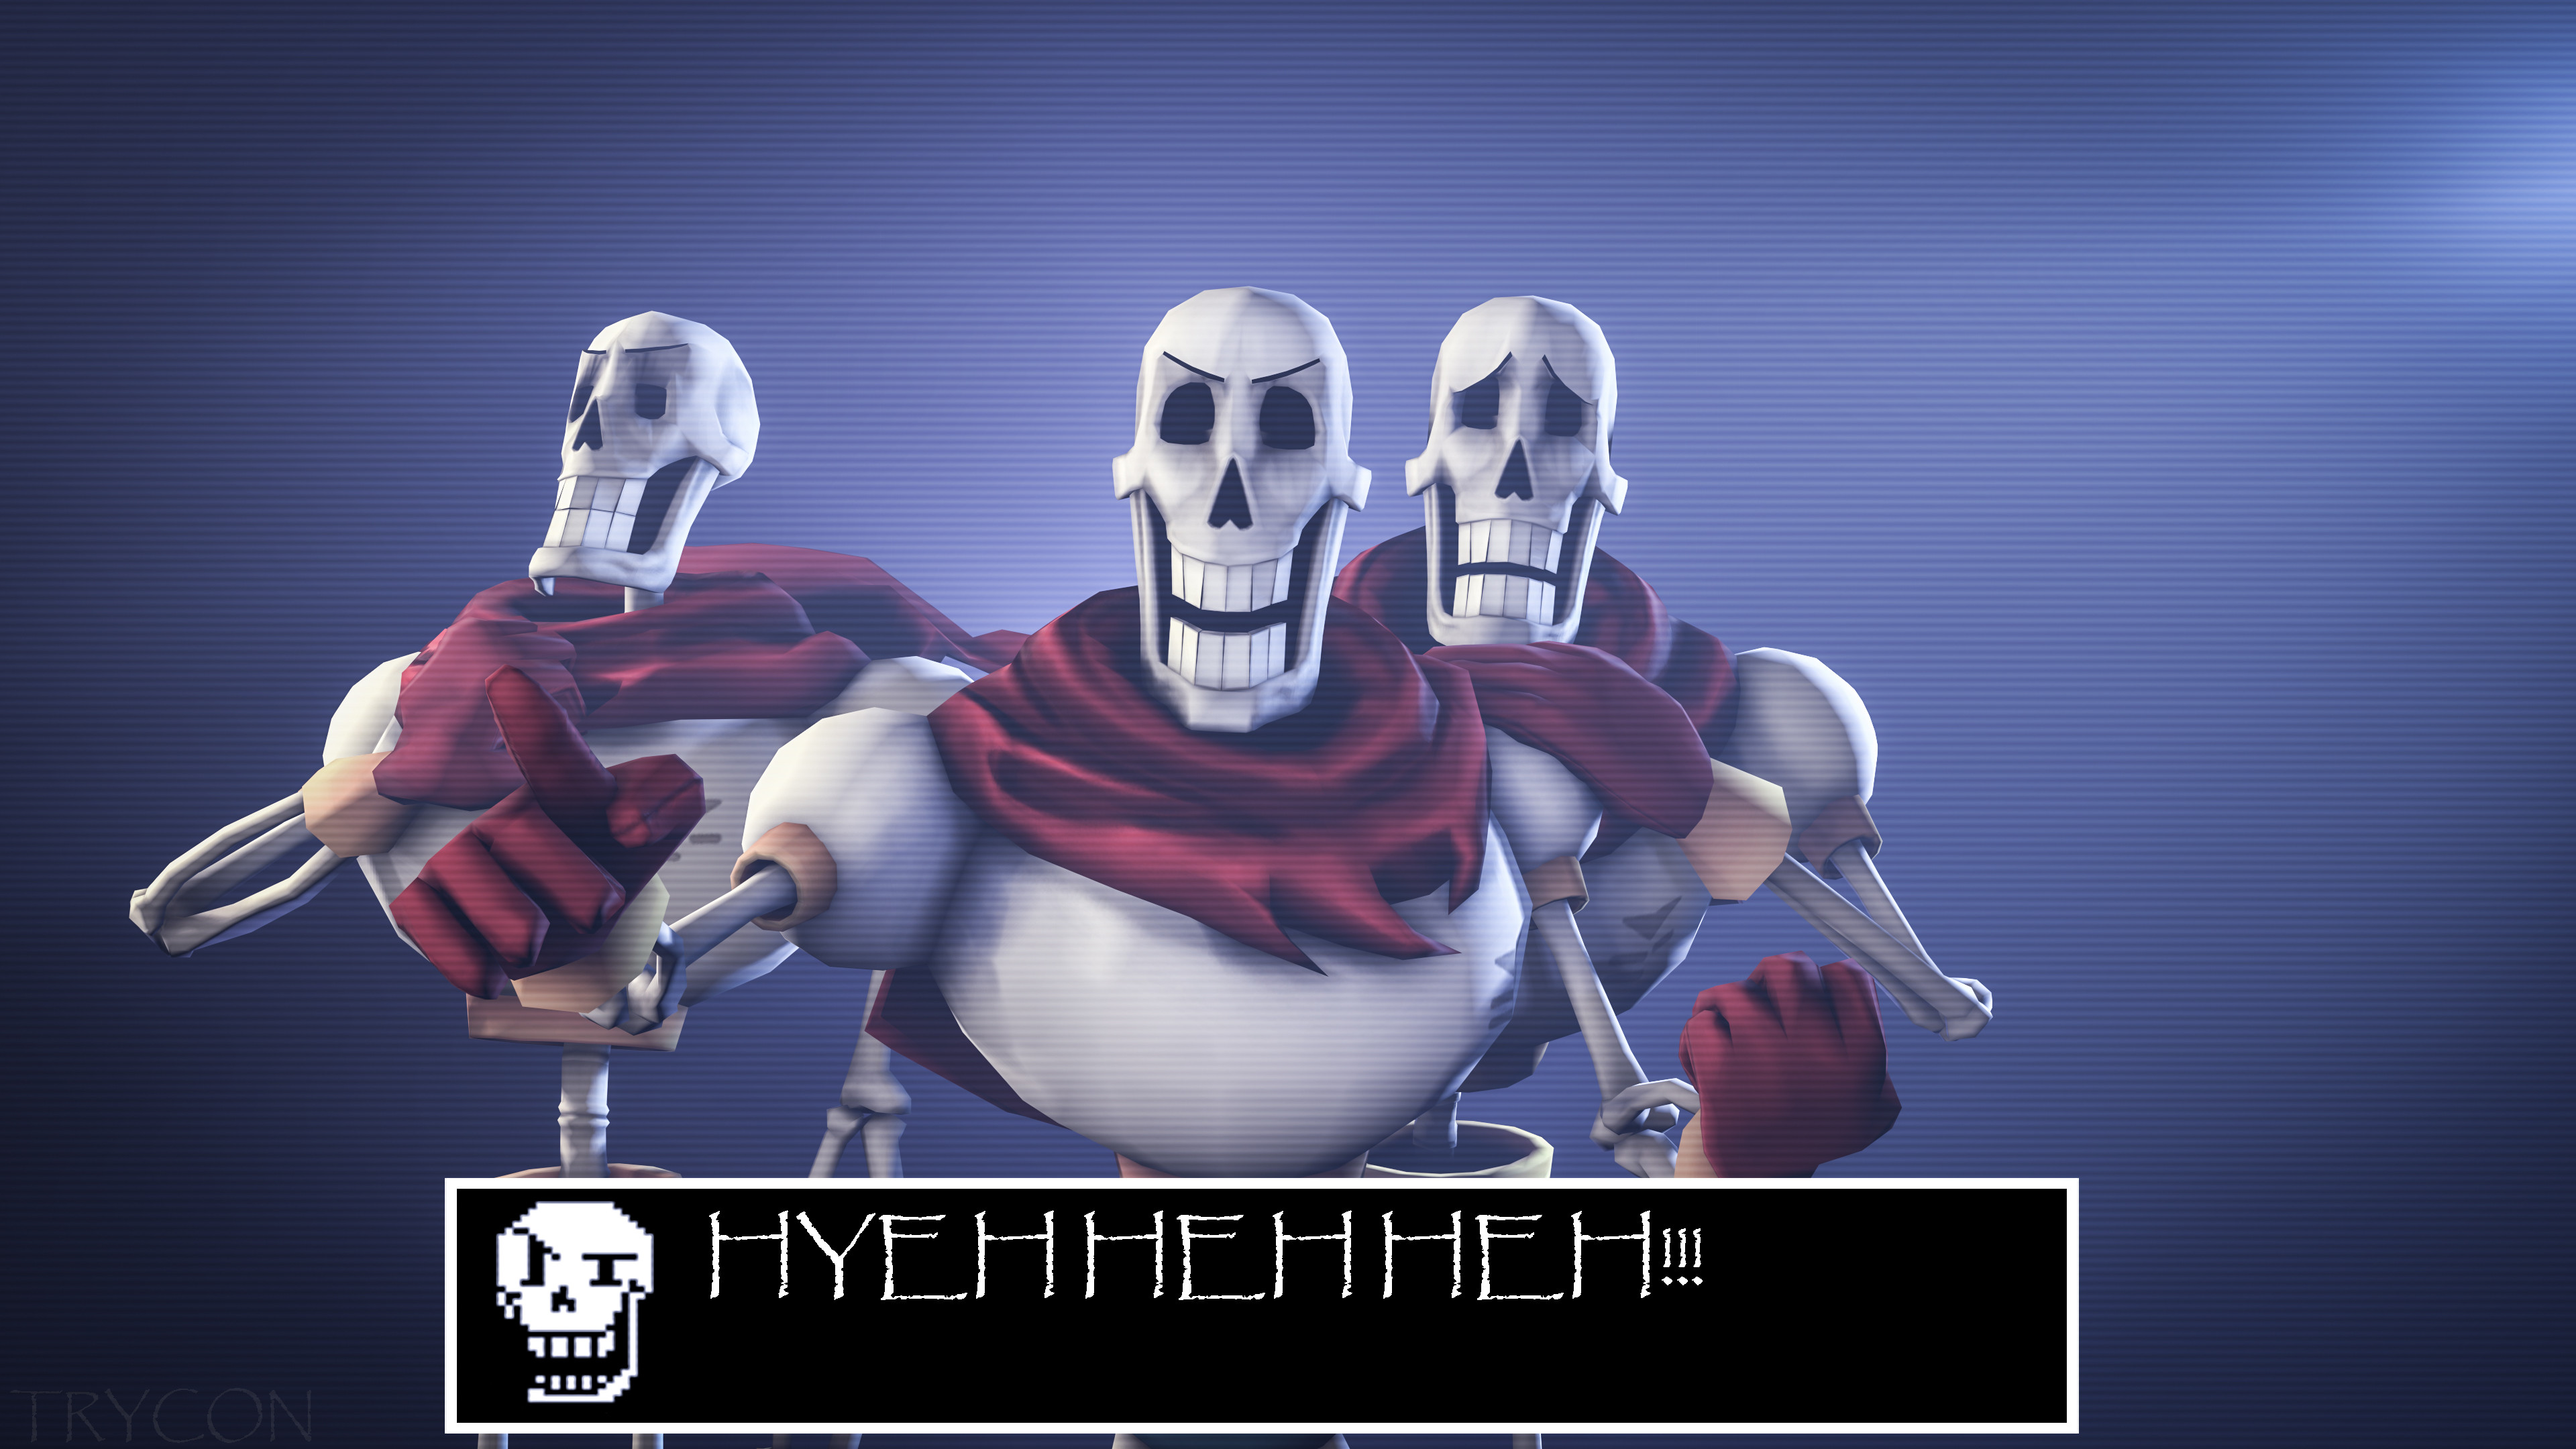 [Undertale] Papyrus by Trycon1980 on DeviantArt